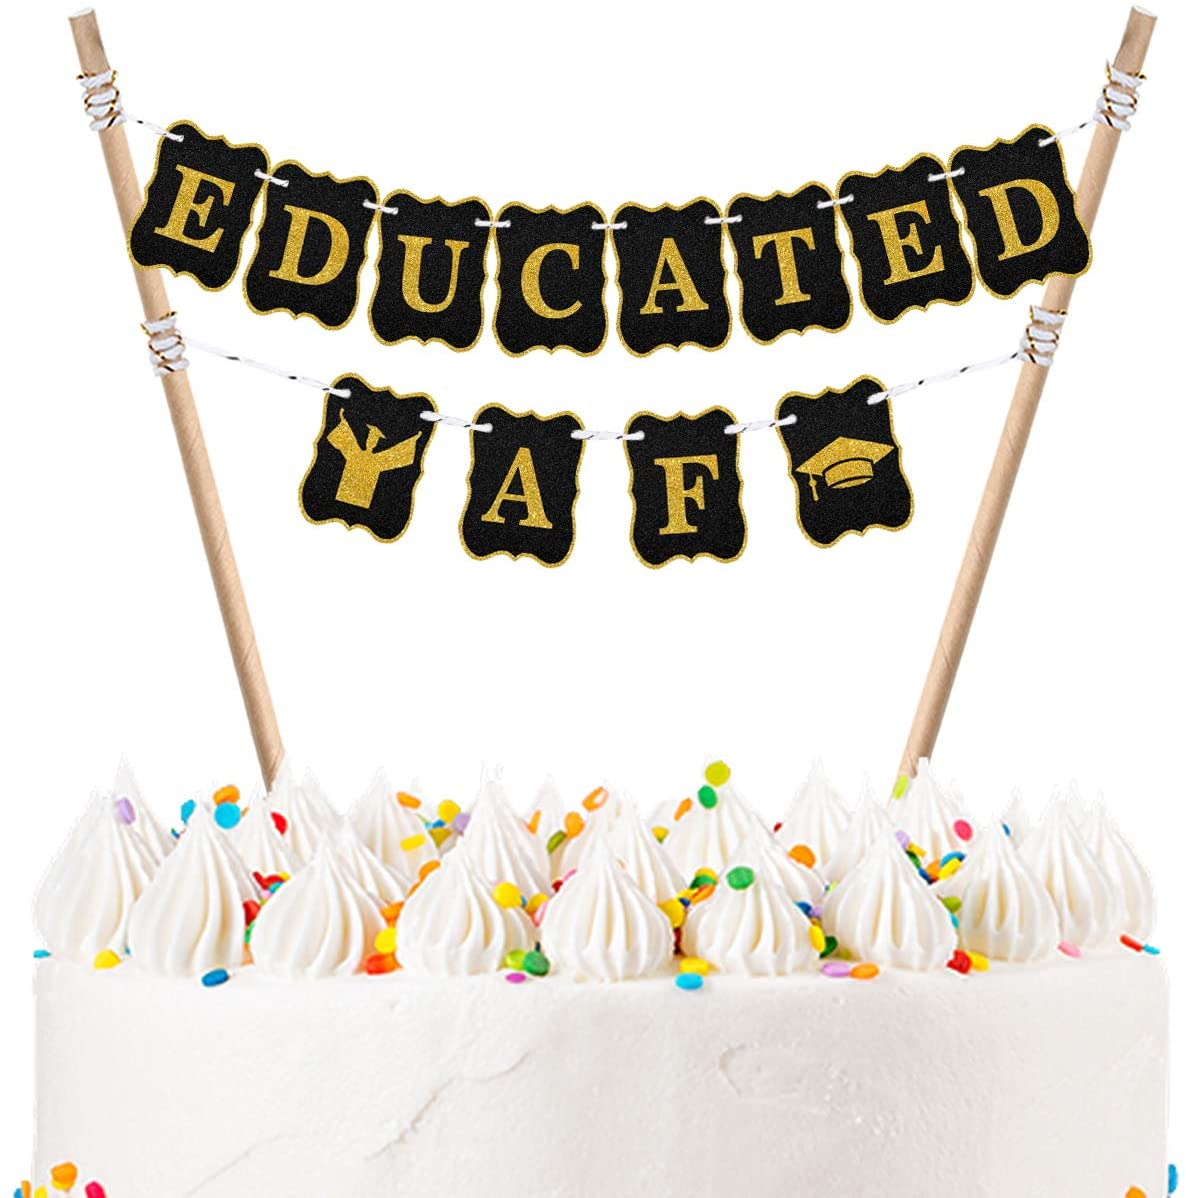 Educated AF Cake Bunting Topper,Handmade 2020 High School Graduation Party Decorations Supplies 2020 College Graduation Cake Banner Topper Garland